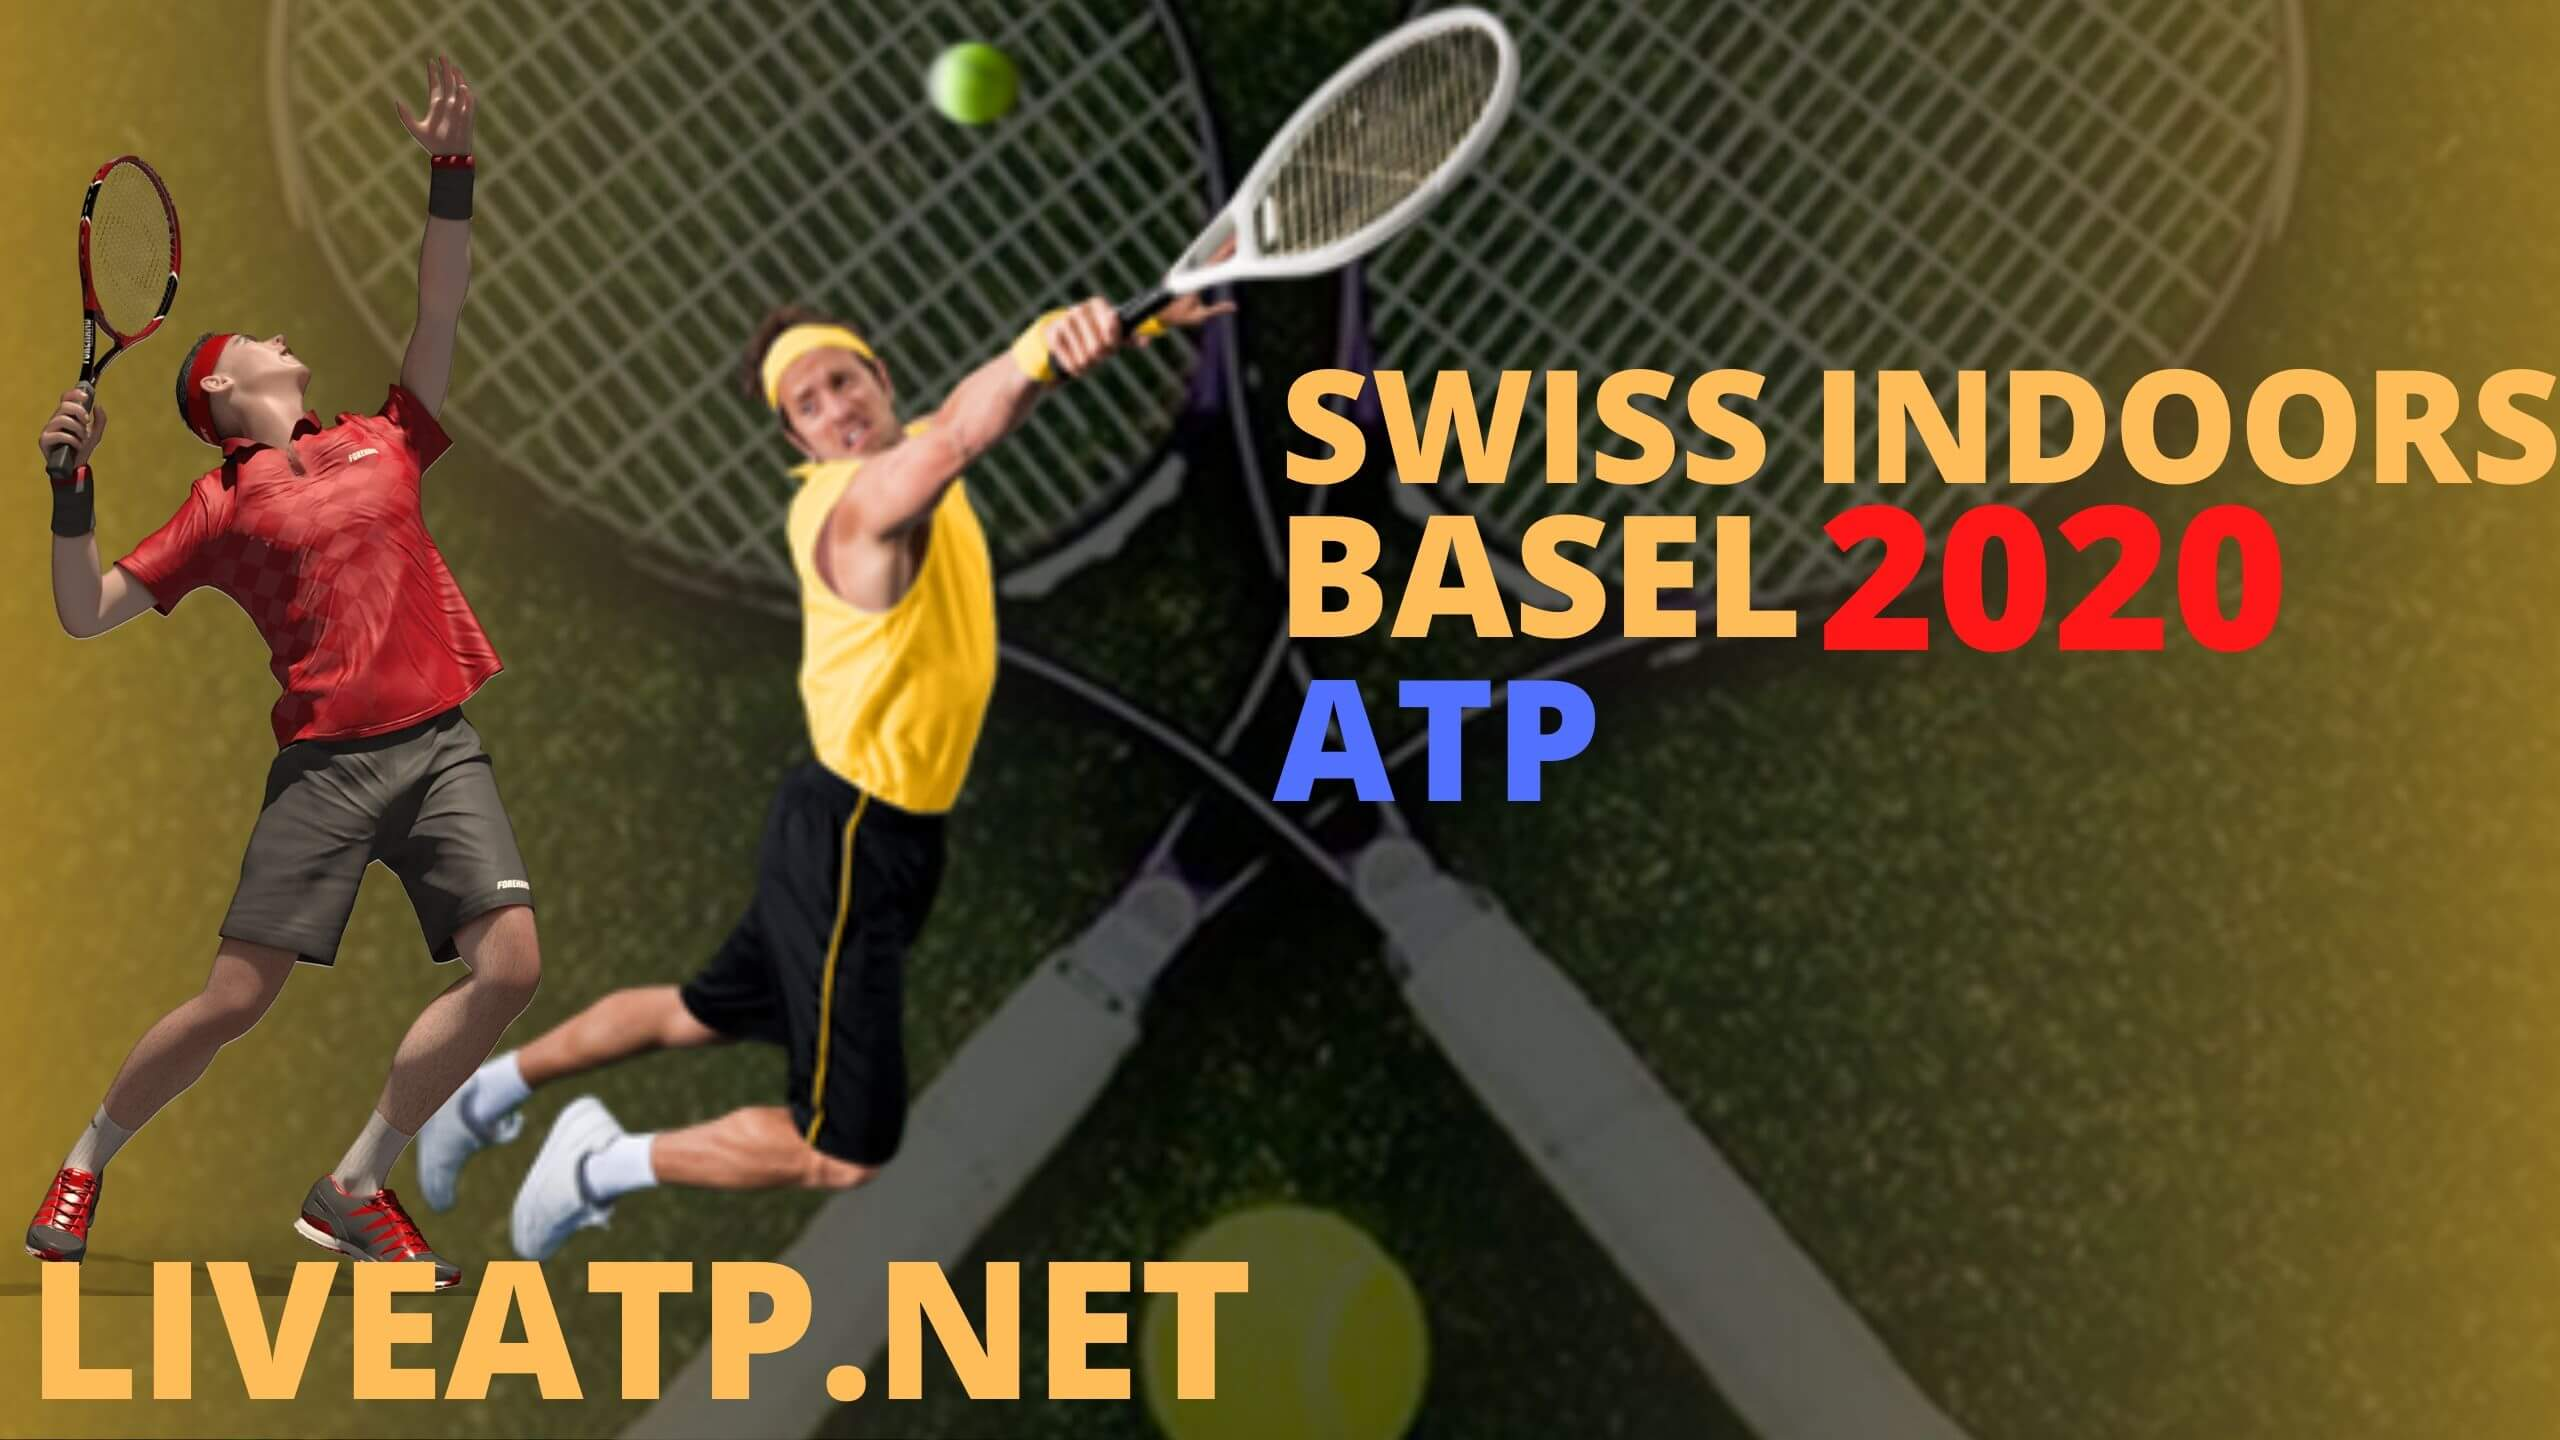 Swiss Indoors Basel Live Stream 2020 | Day 3